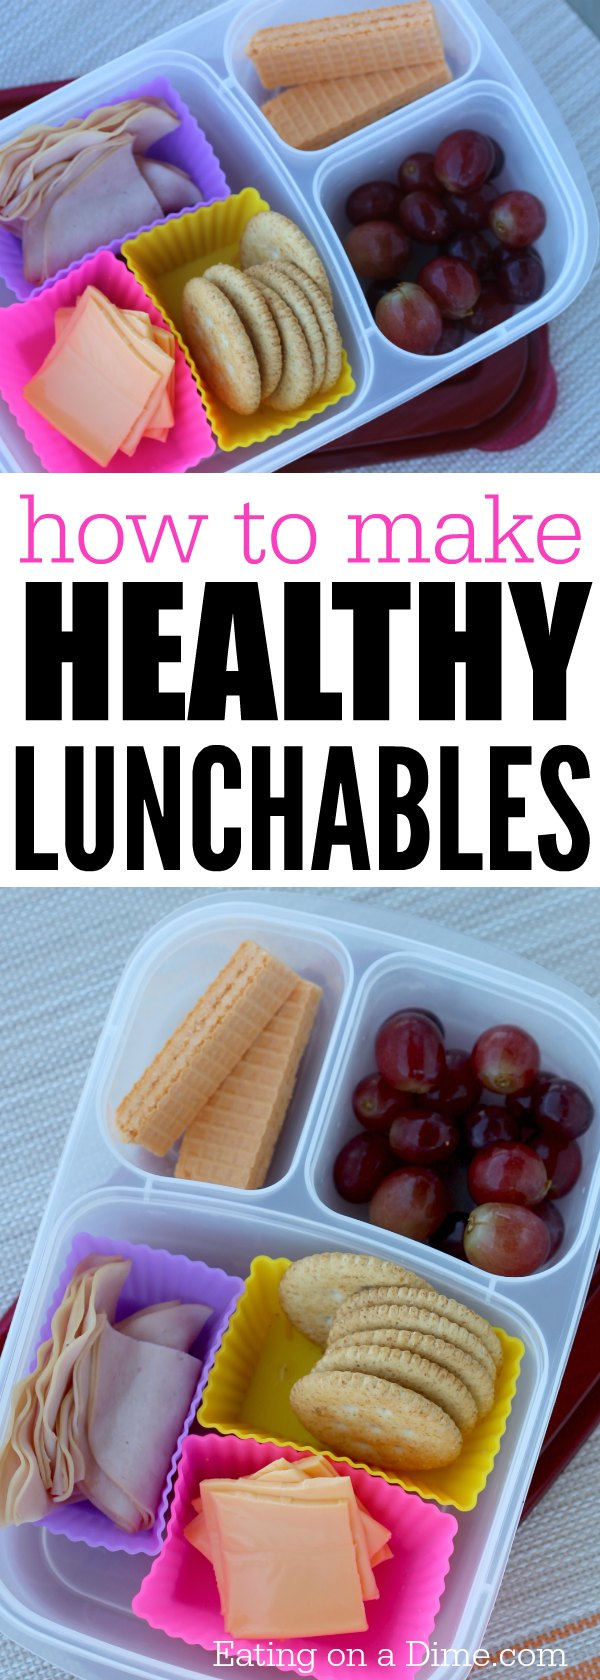 how to make healthy lunchables at home